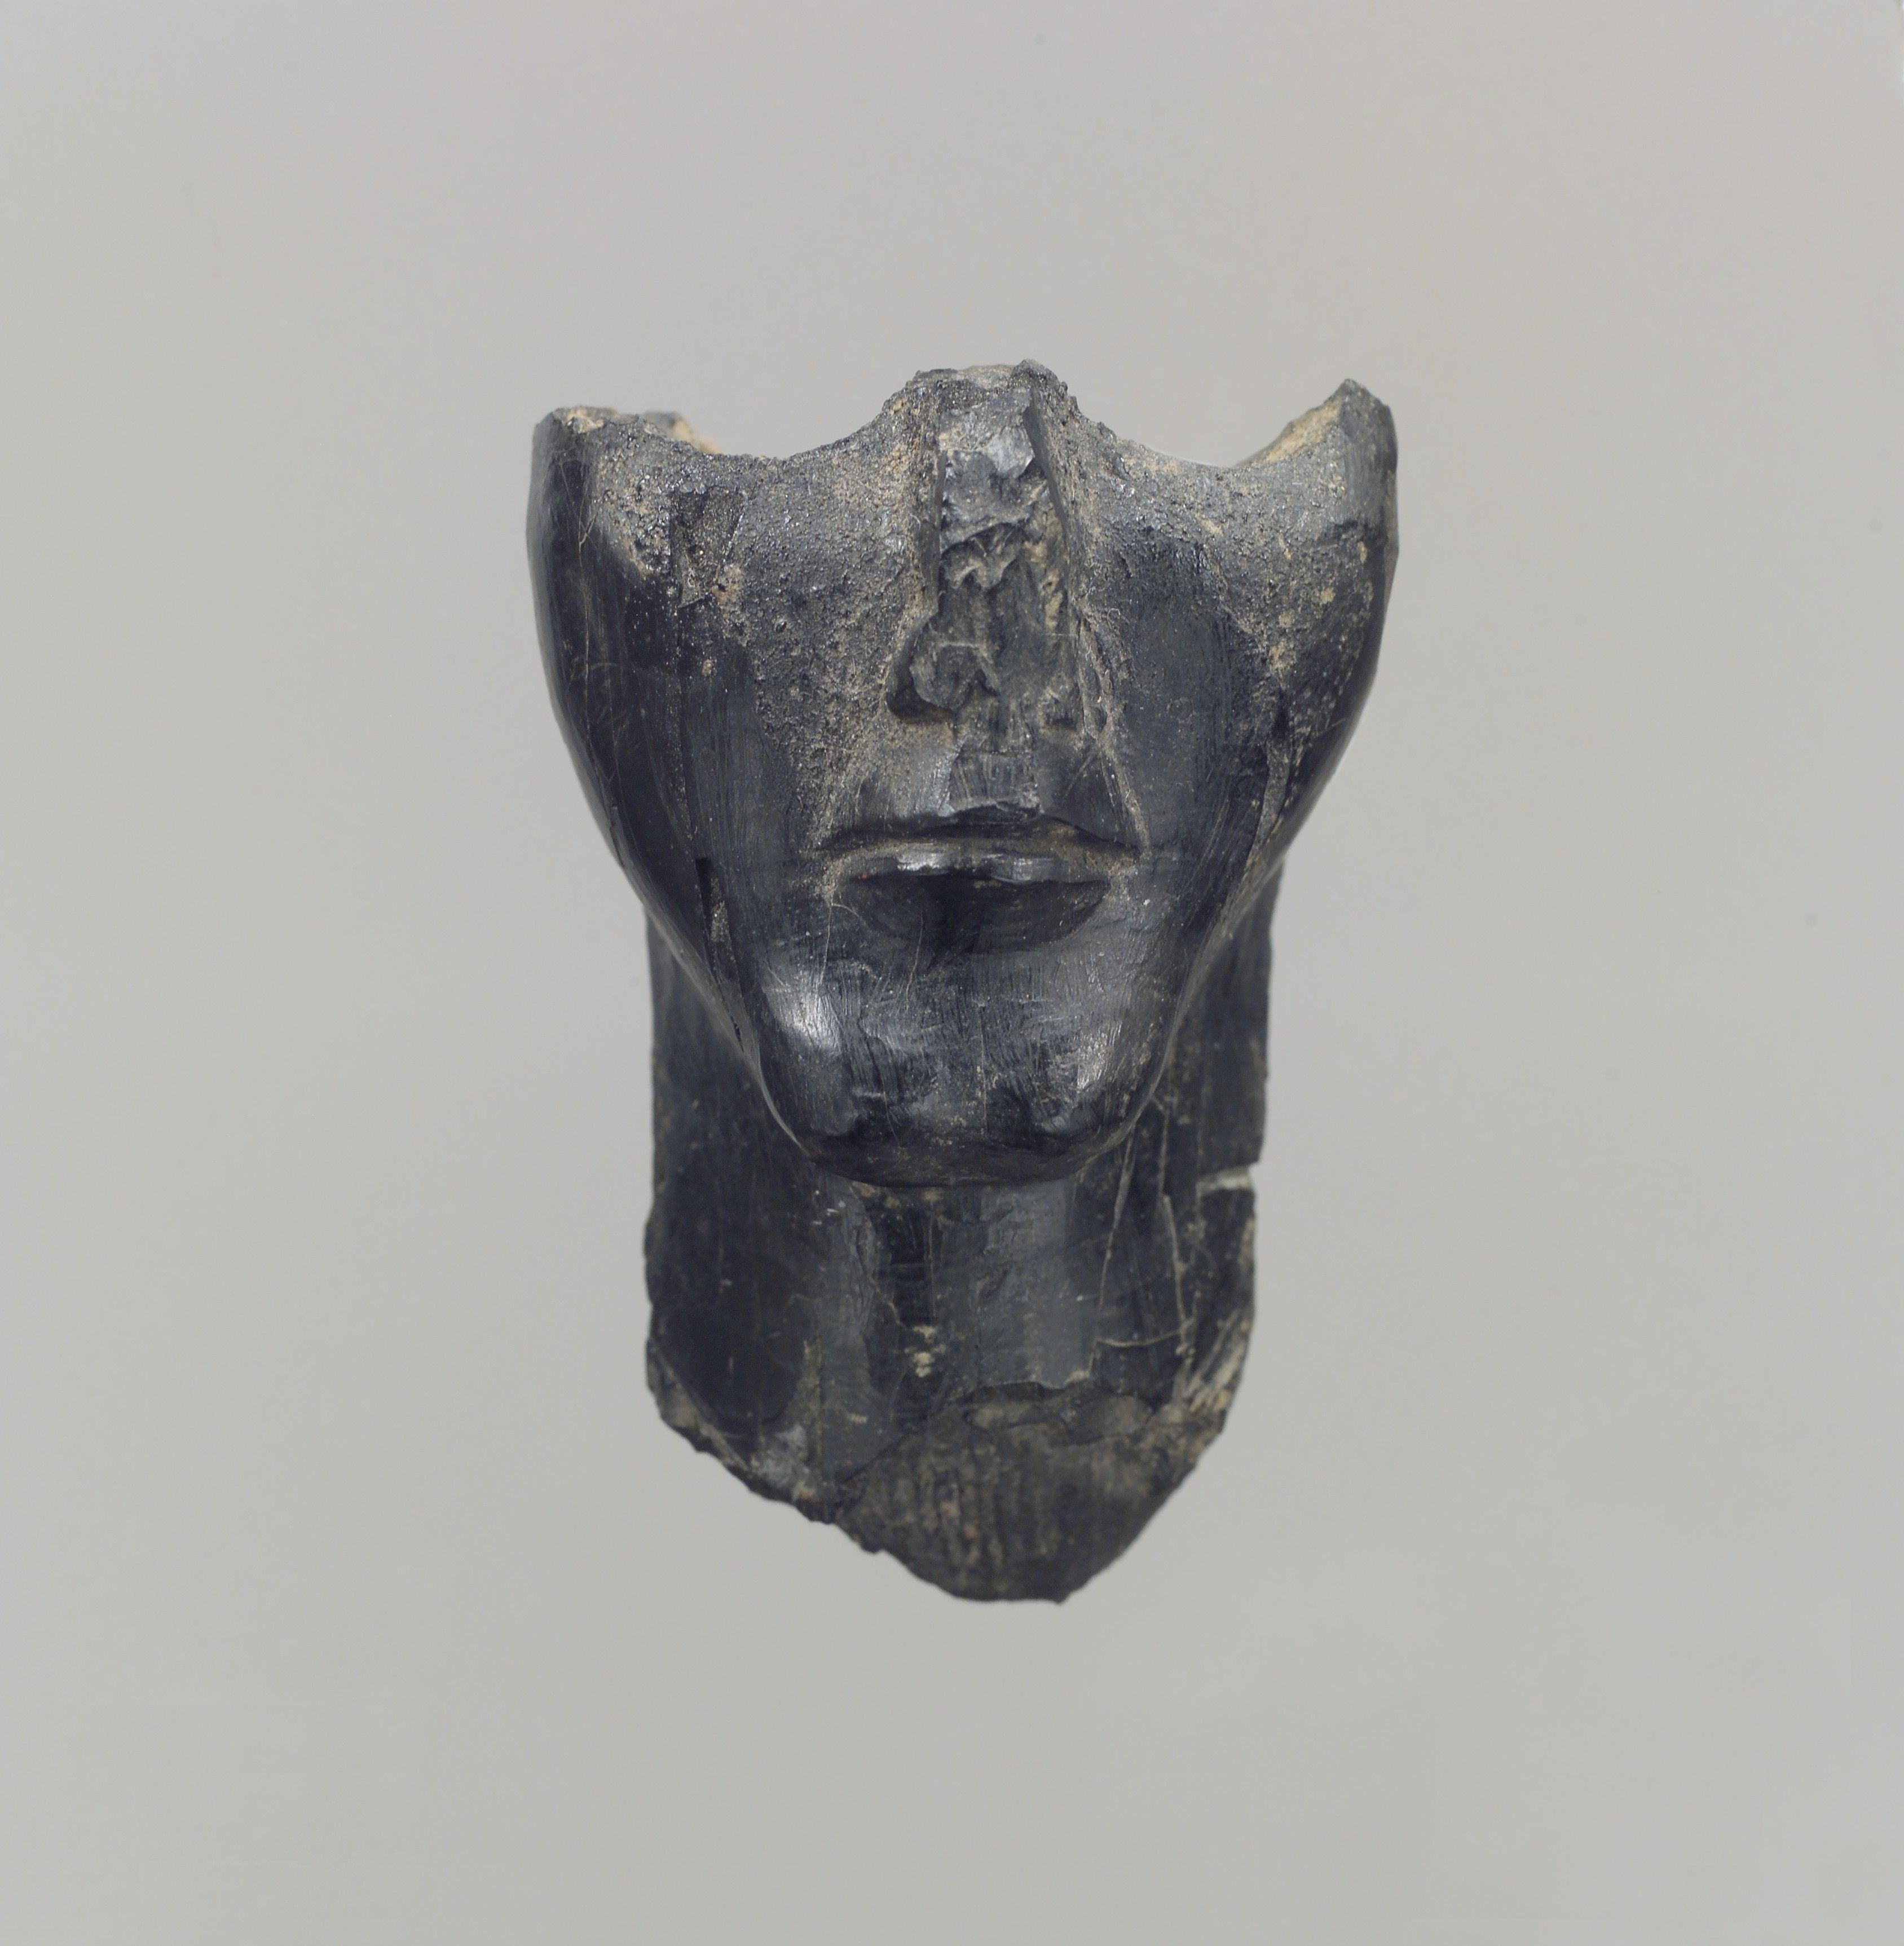 Lower half of a human head in the round Period: Iron Age II Date: ca. 9th century B.C.